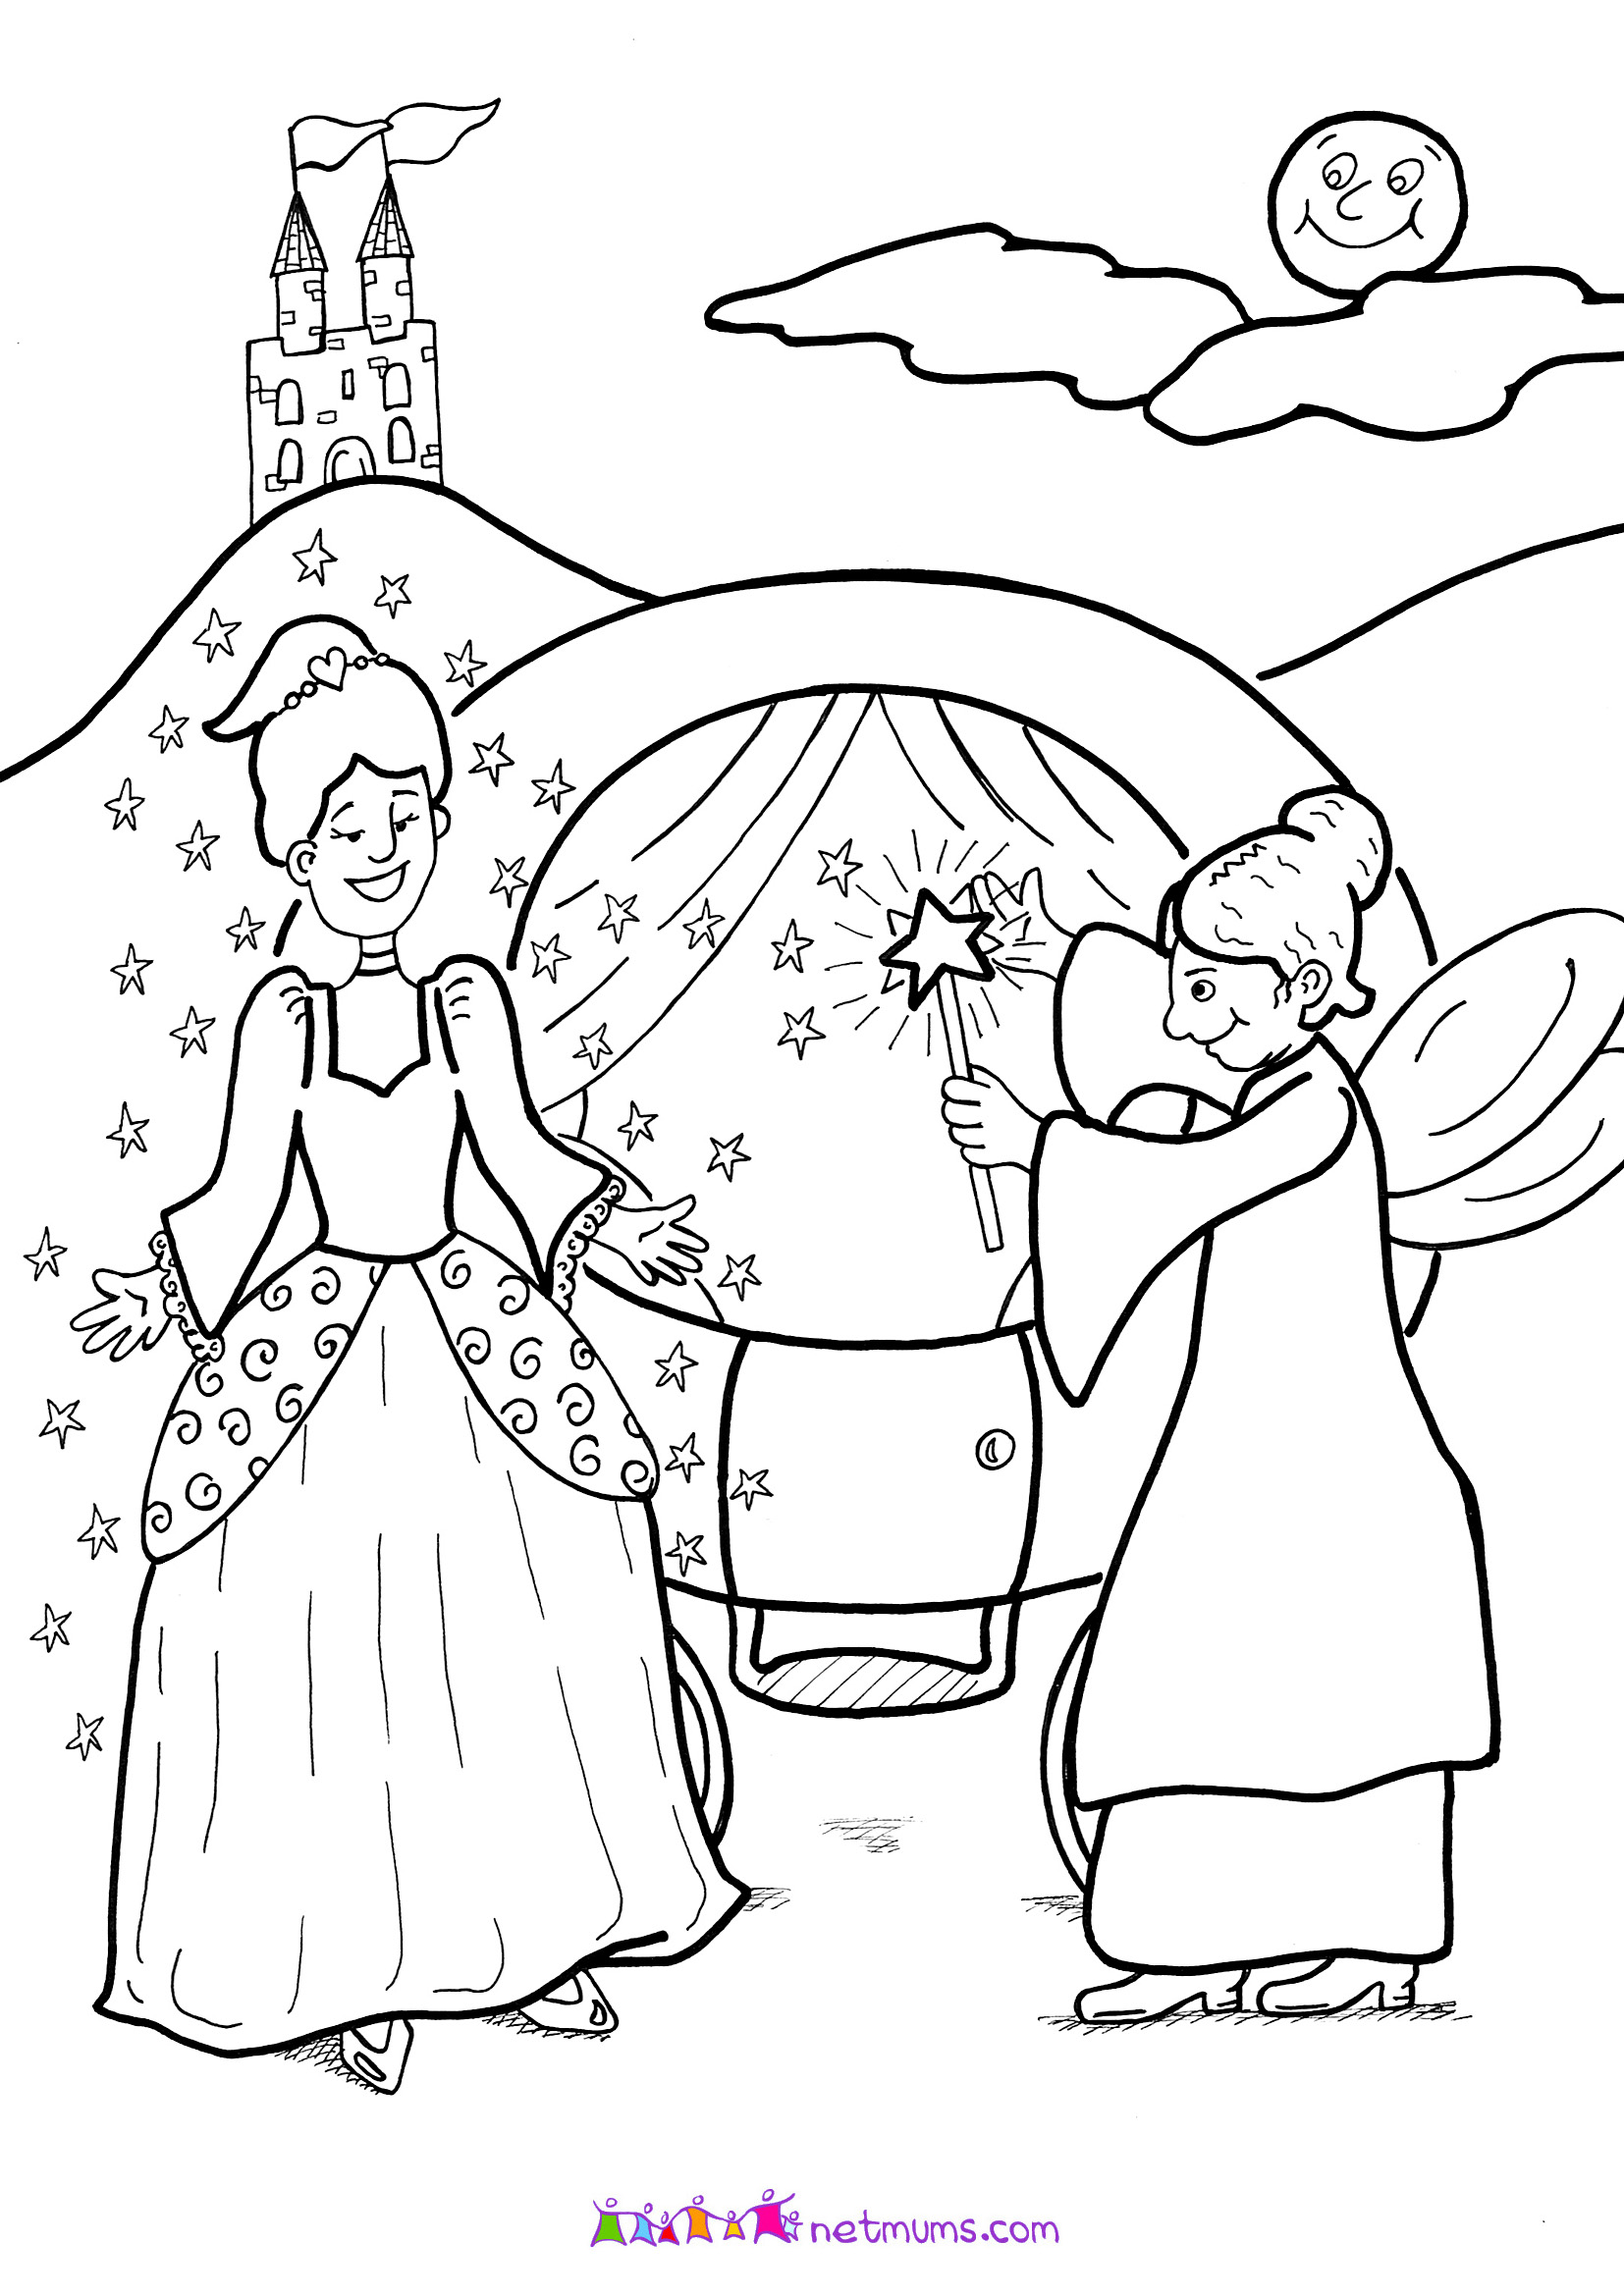 Three Billy Goats Gruff Bridge Coloring Pages Coloring Pages